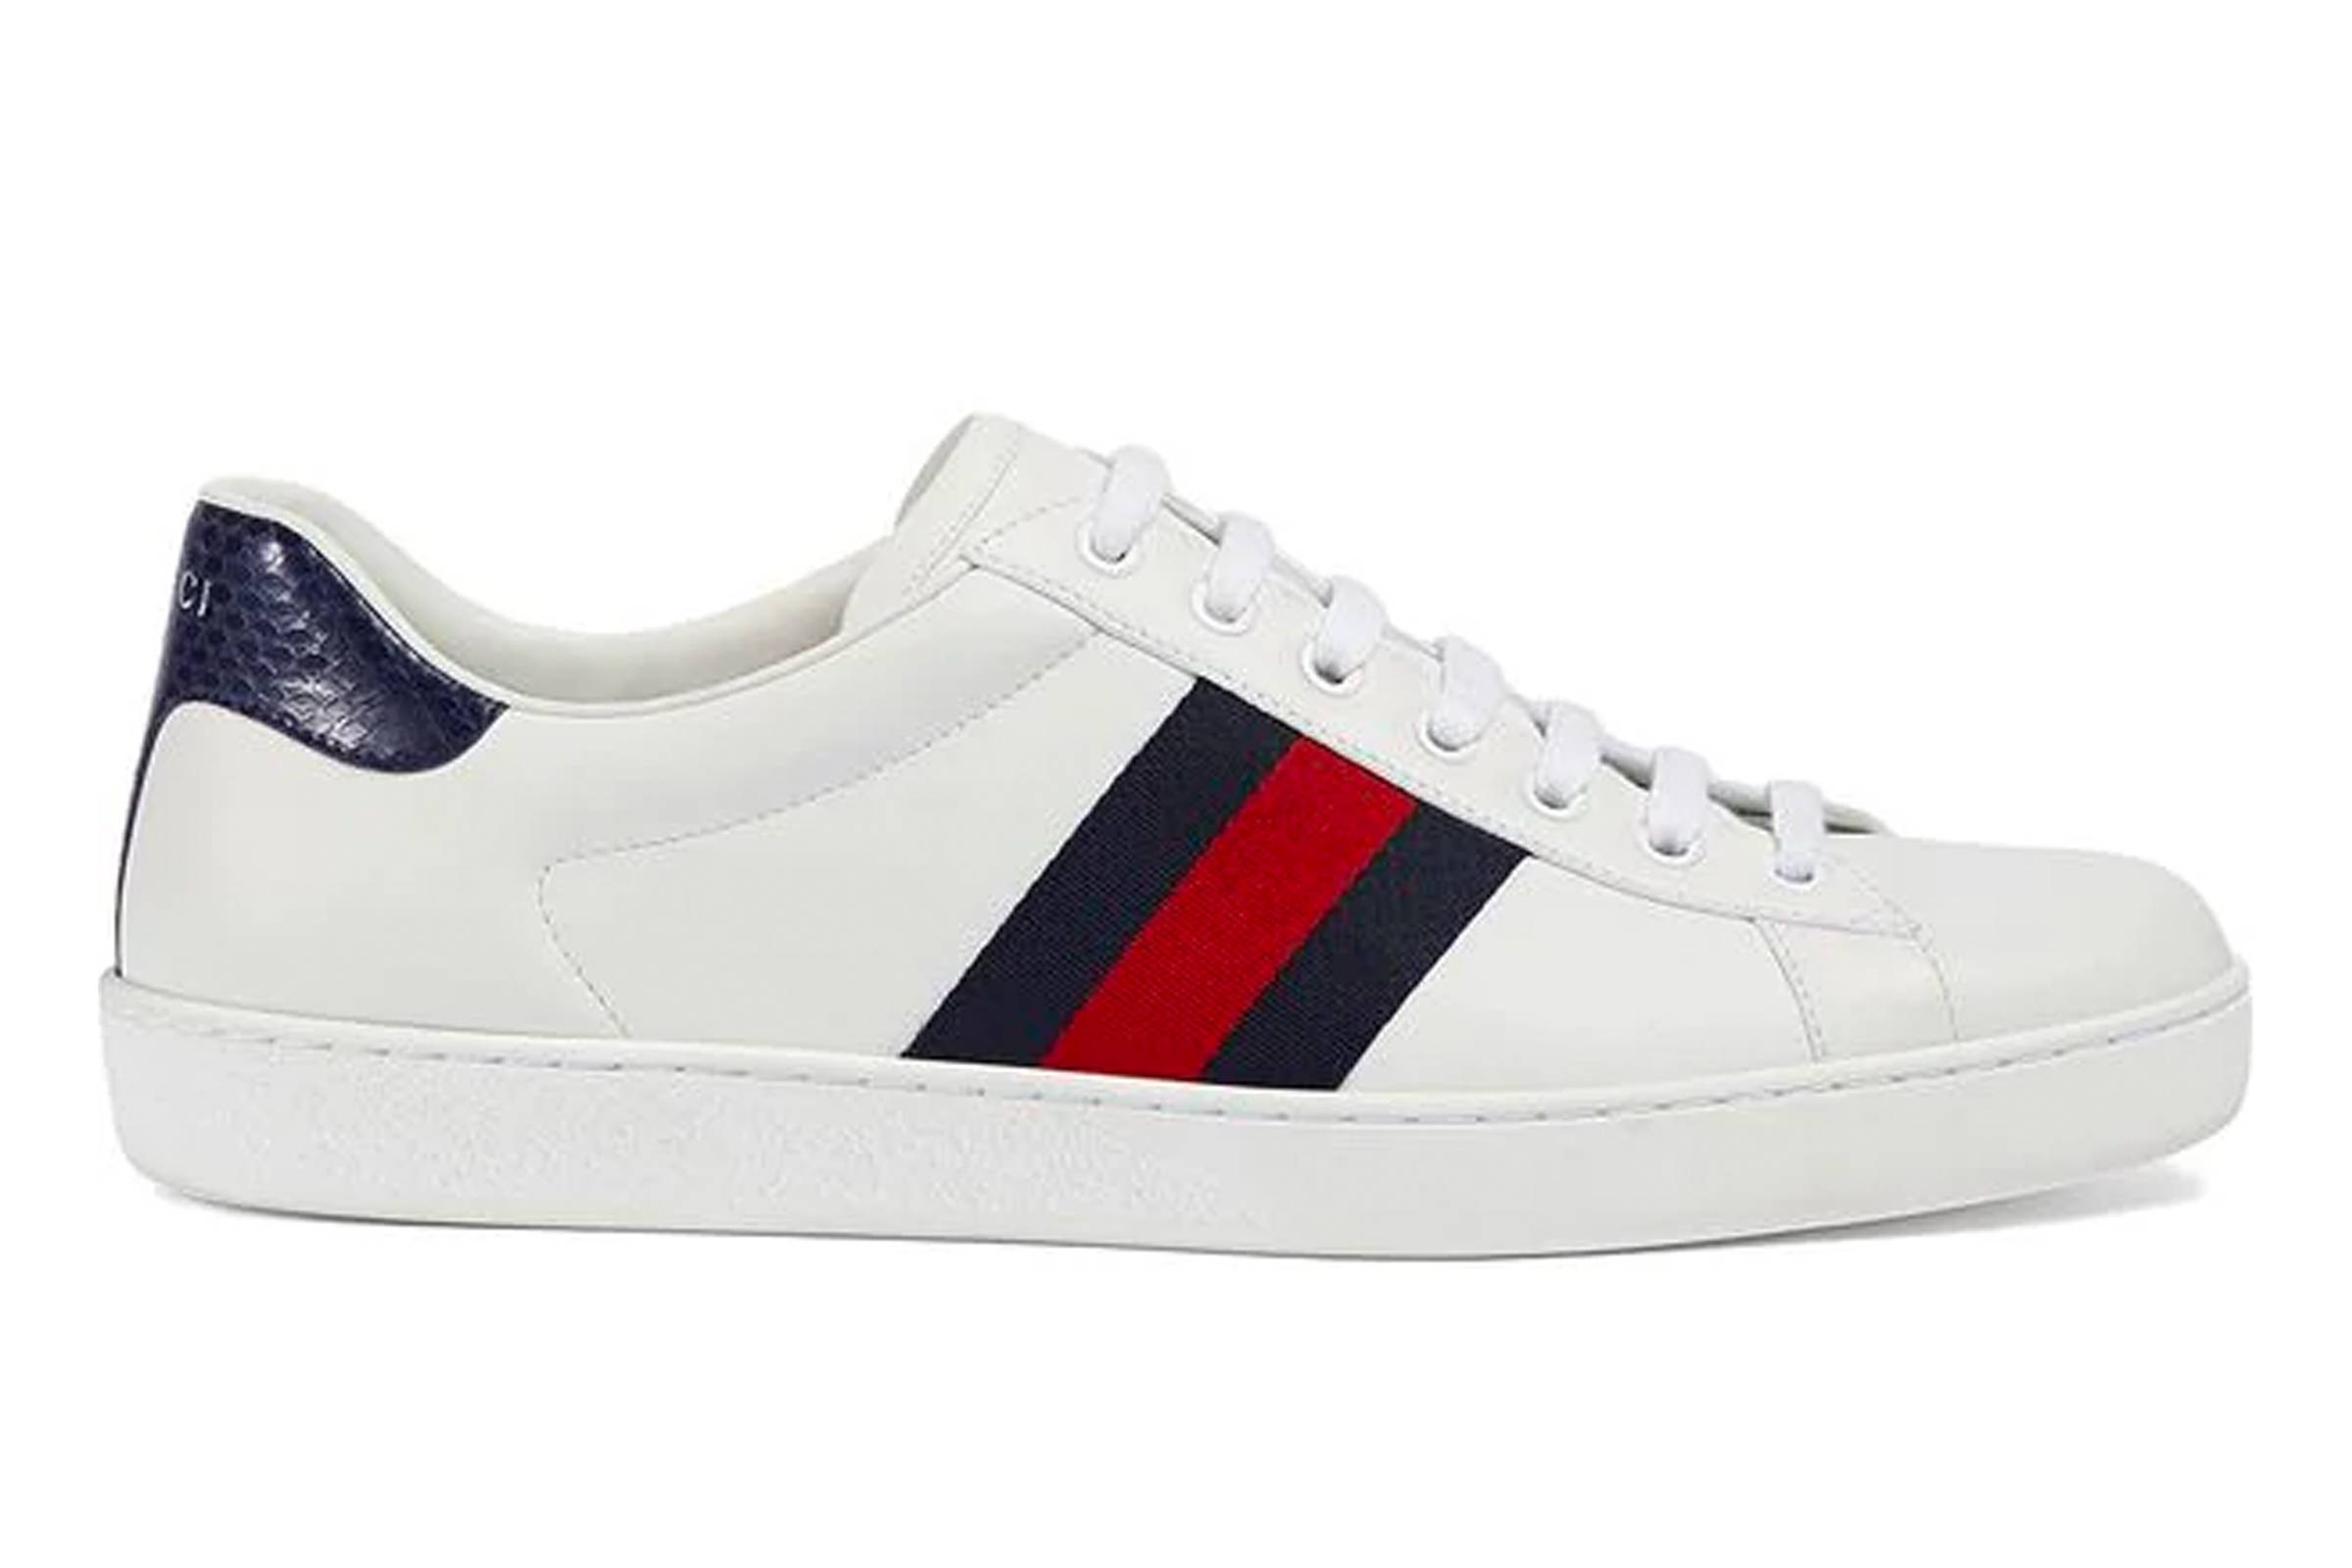 Gucci Ace Low